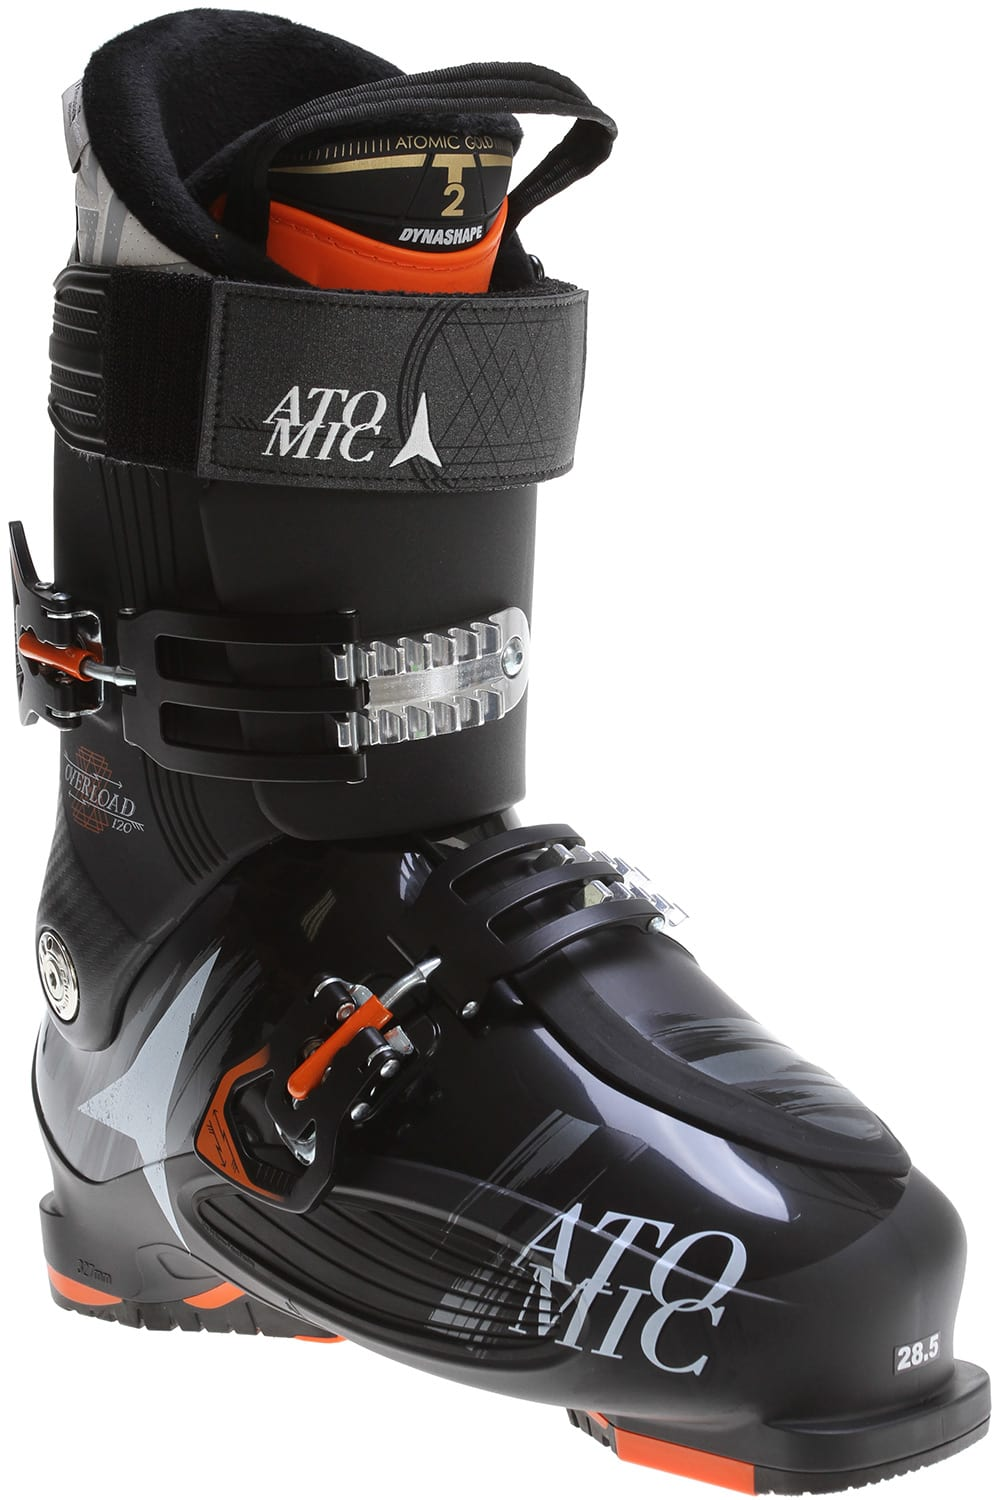 On Sale Atomic Overload 120 Ski Boots Up To 50 Off